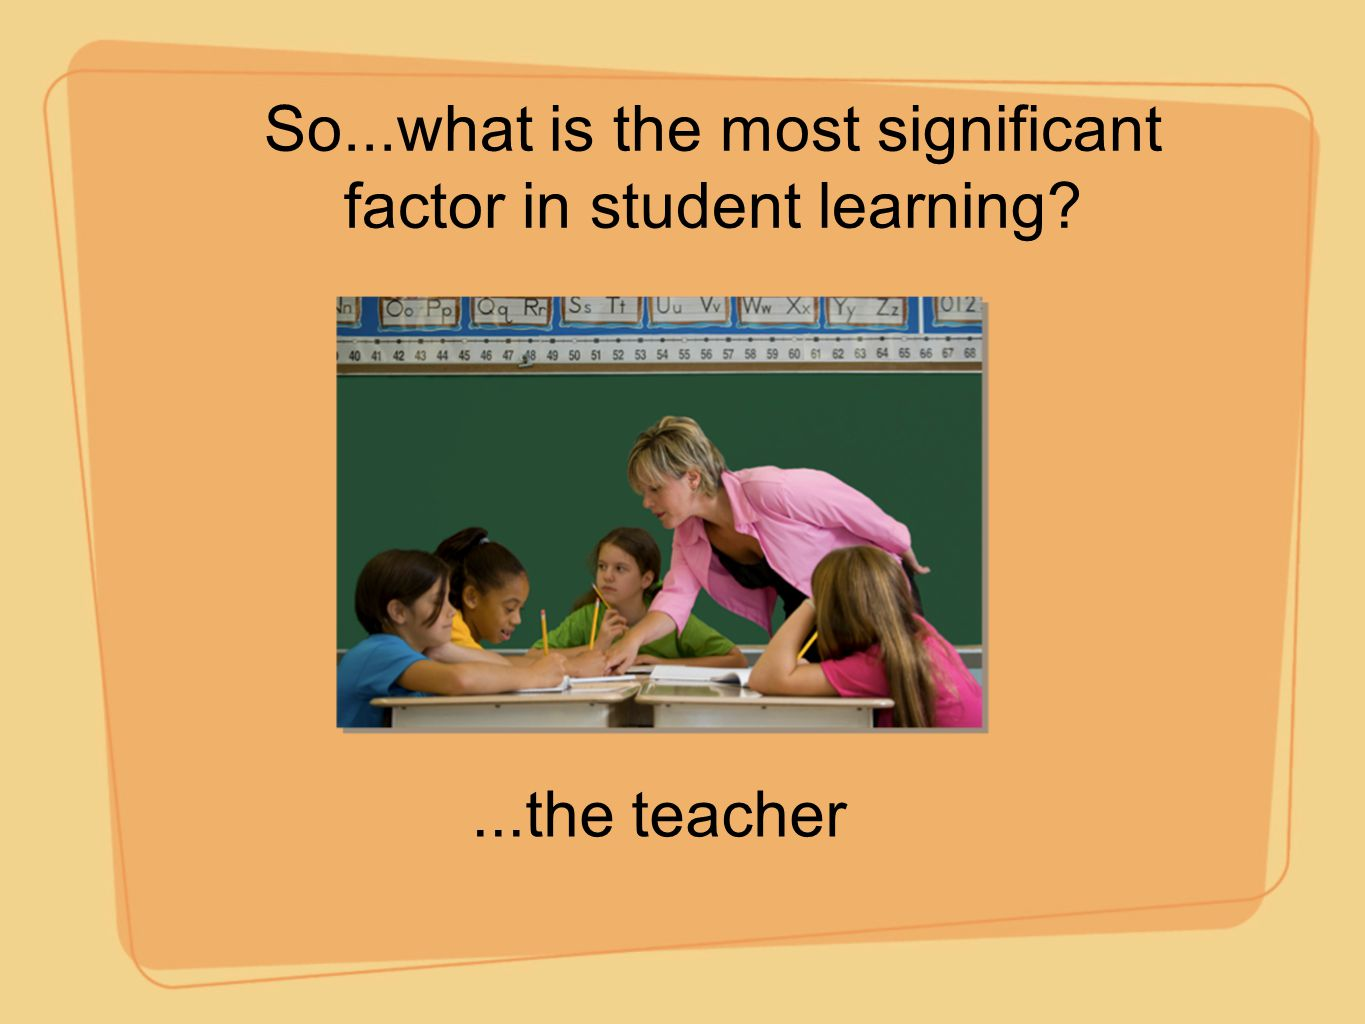 So...what is the most significant factor in student learning?...the teacher